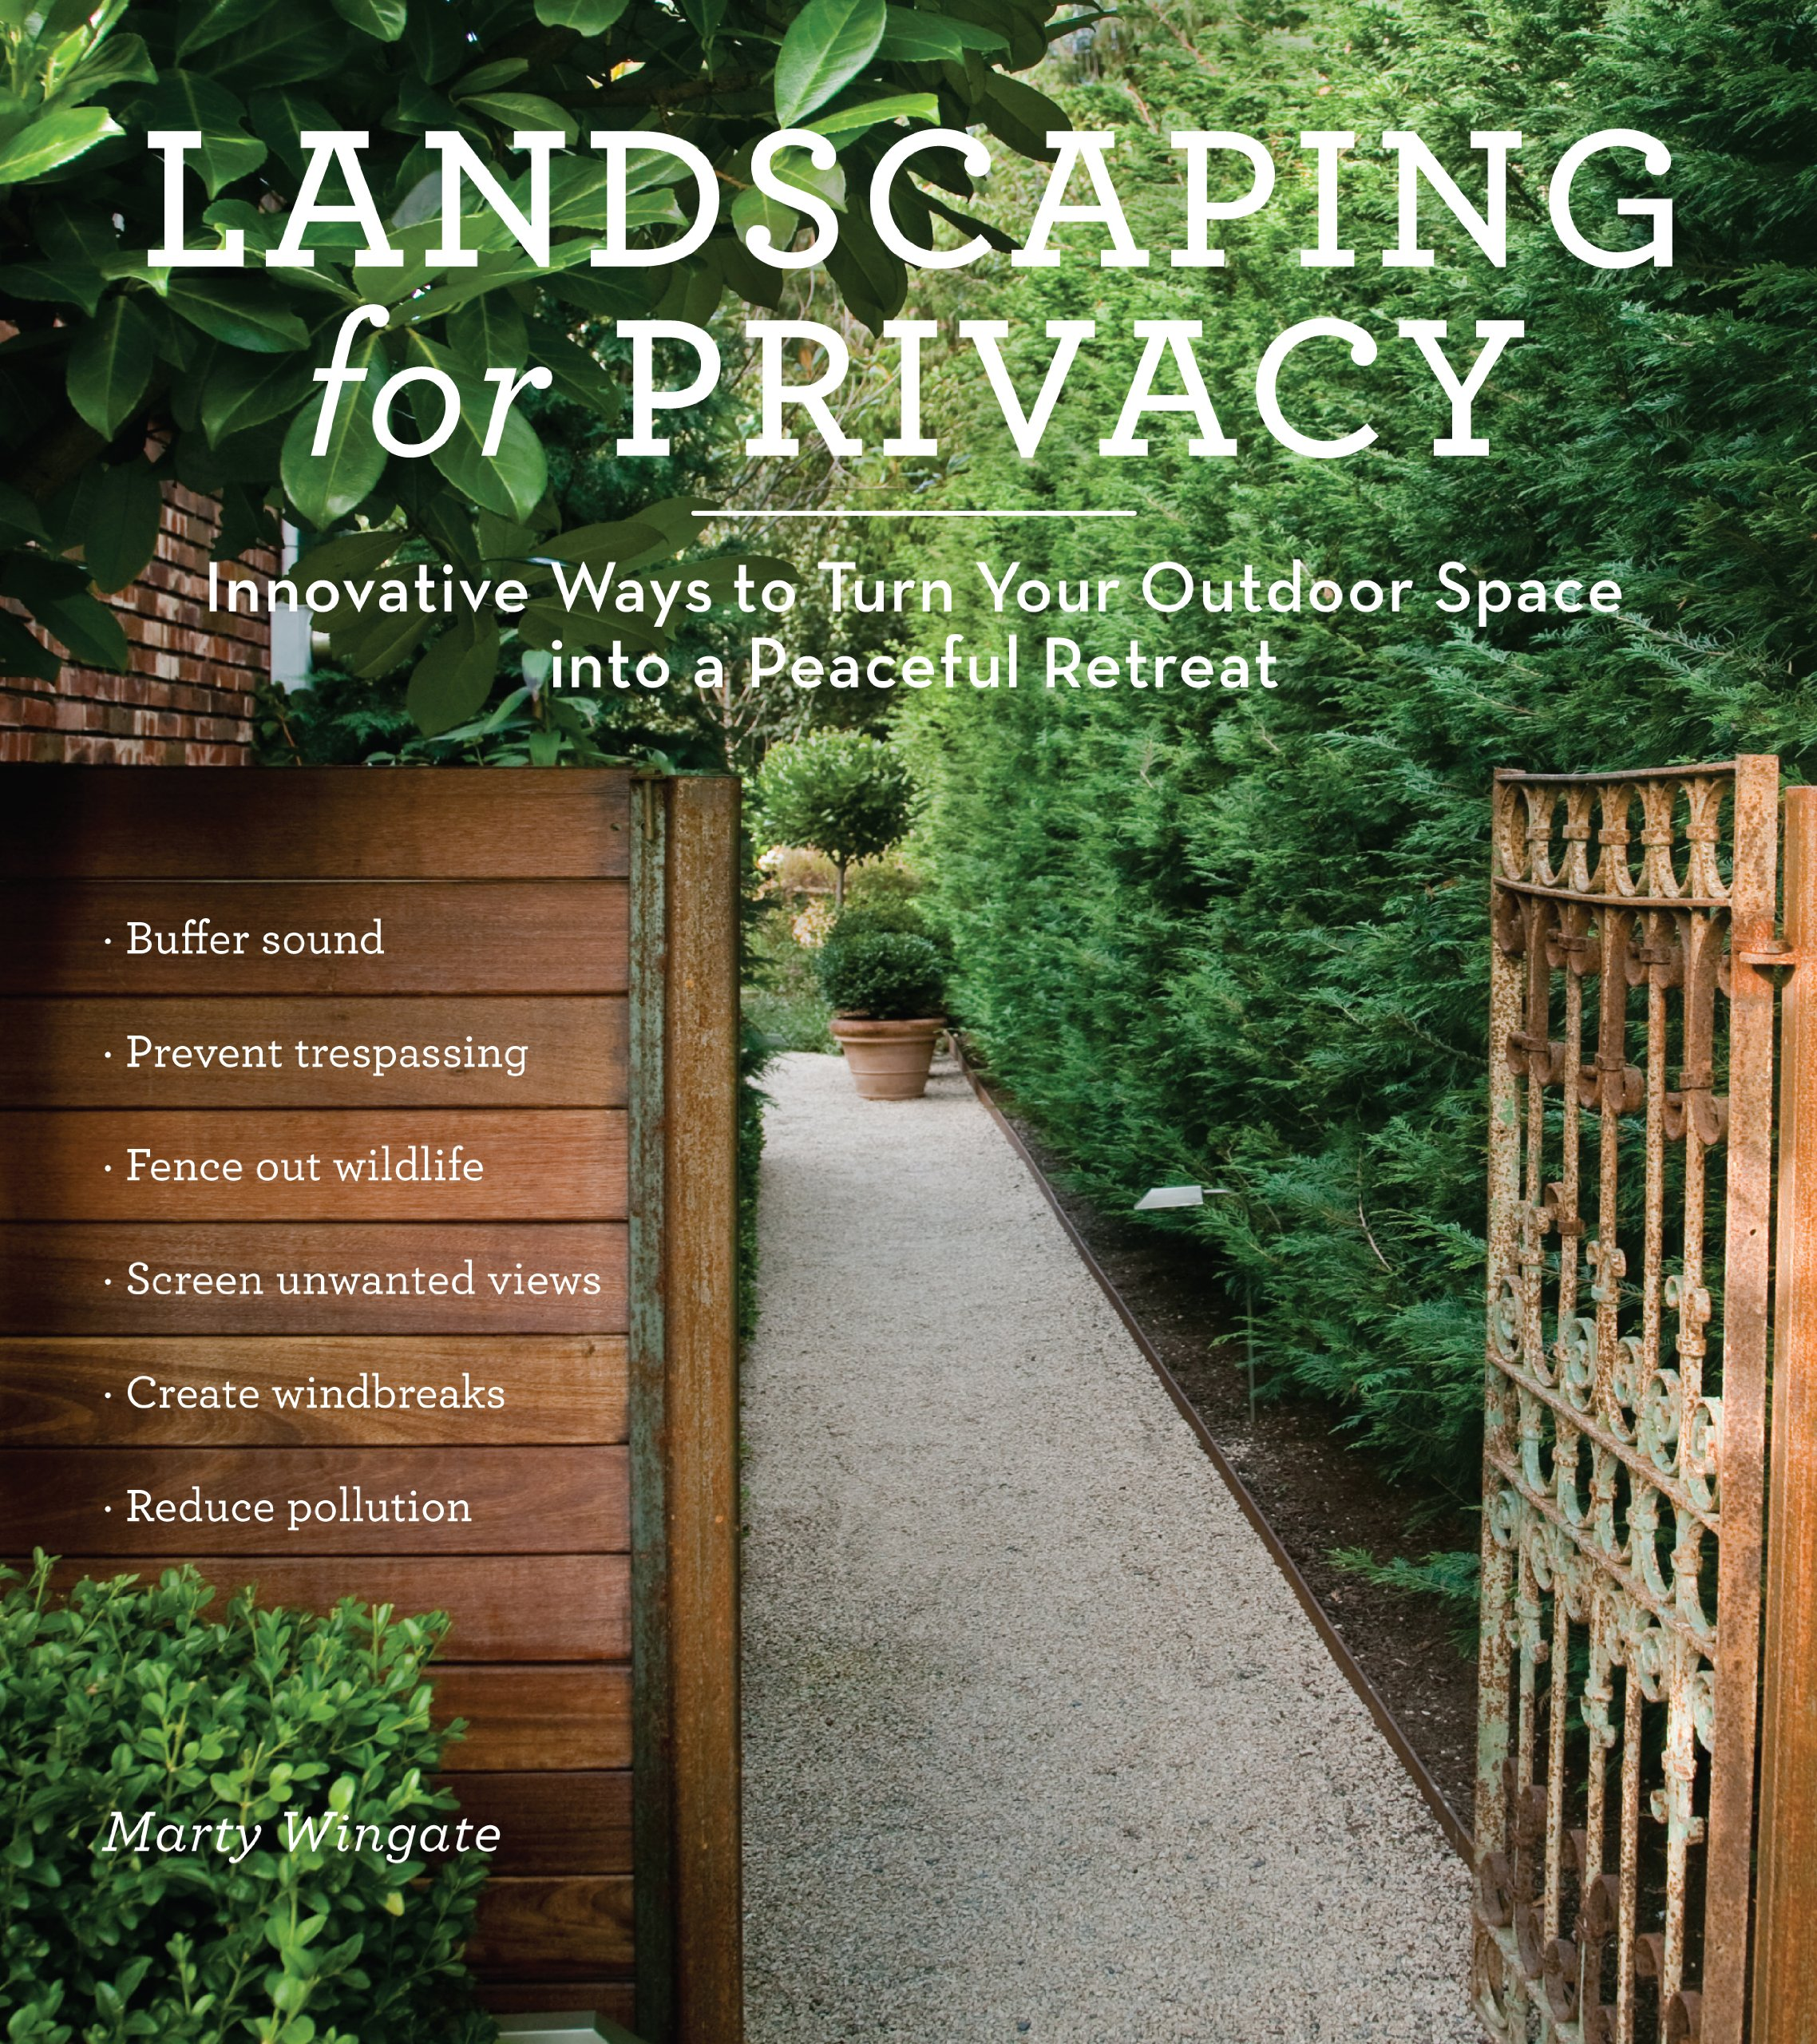 Landscaping for Privacy: Innovative Ways to Turn Your Outdoor Space into a Peaceful Retreat        -    [PB]